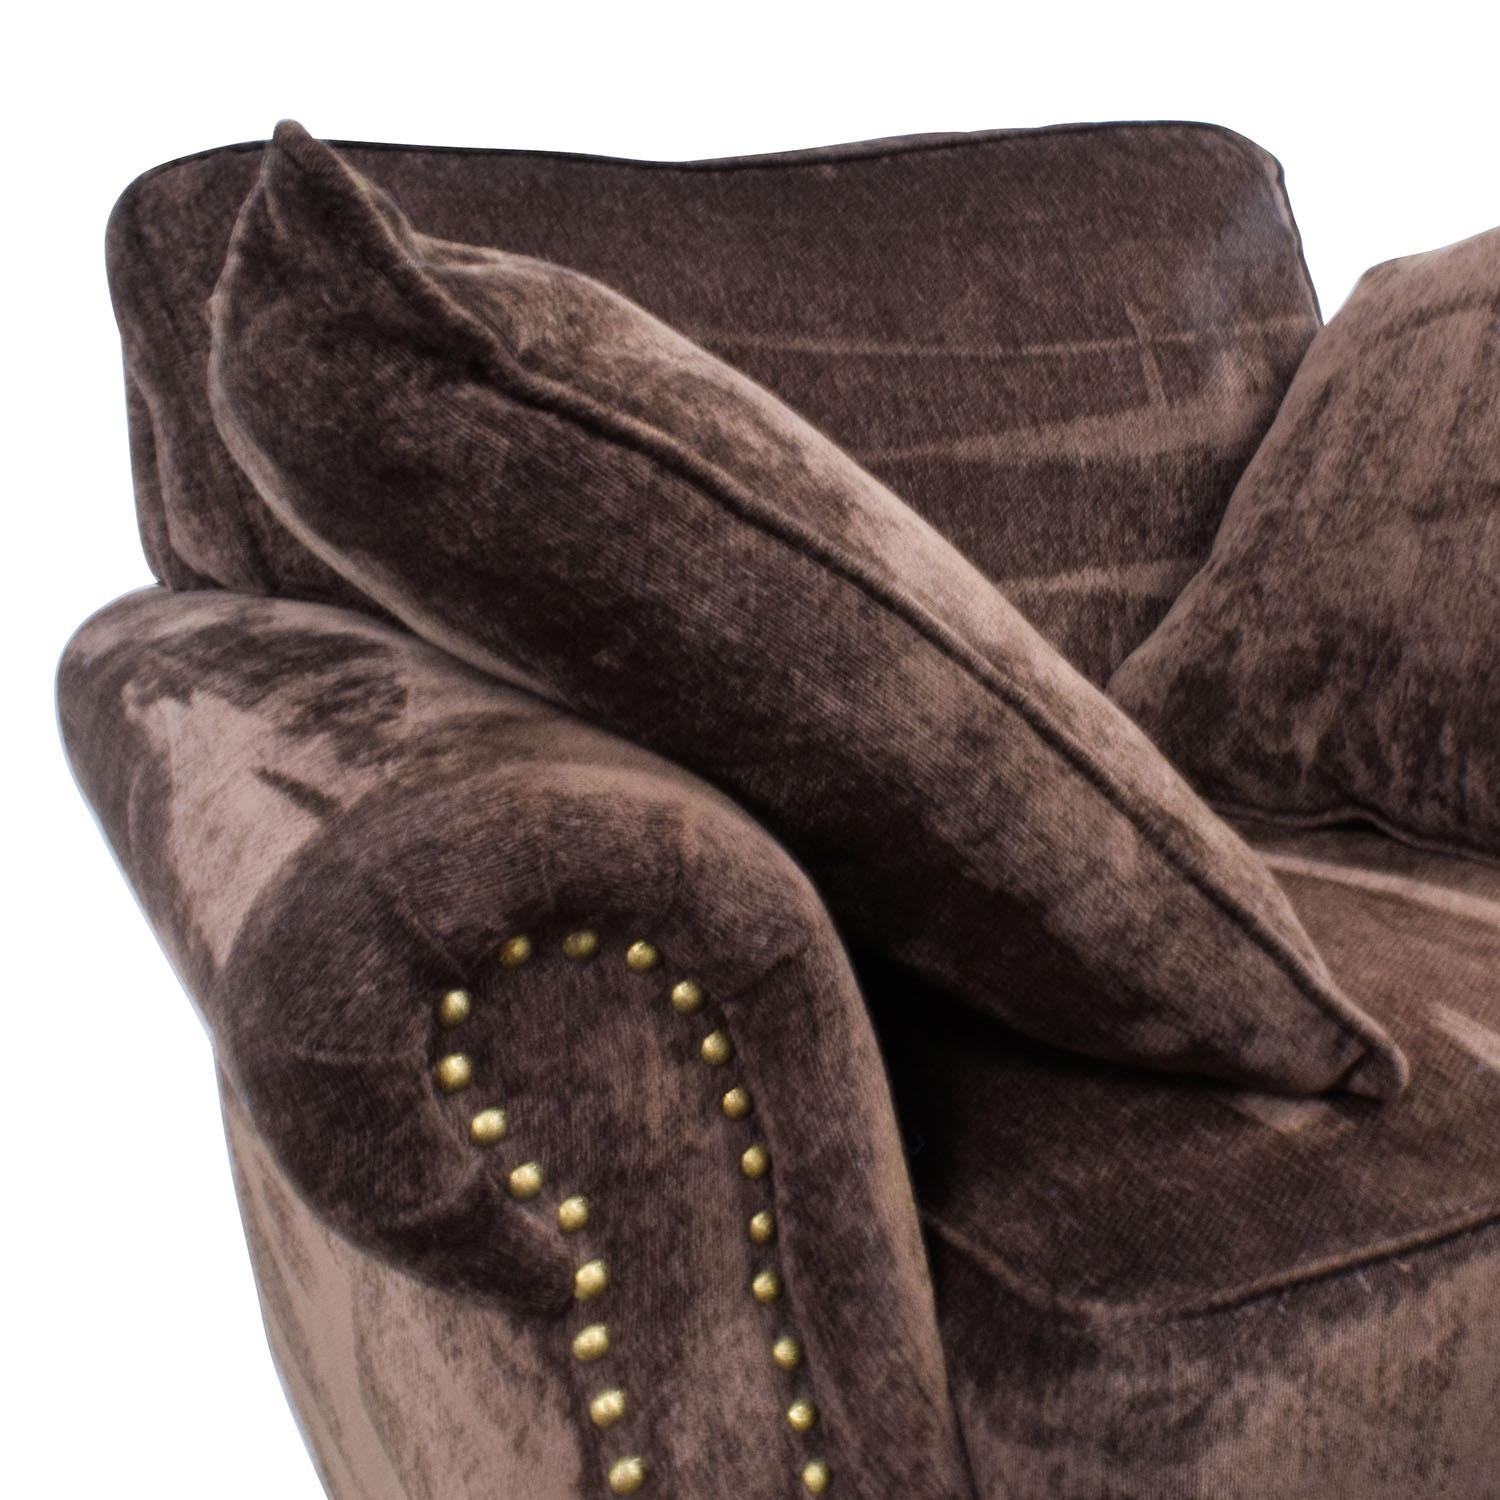 55% Off - Bob's Furniture Bob's Furniture Mirage Studded Brown with regard to Brown Sofa Chairs